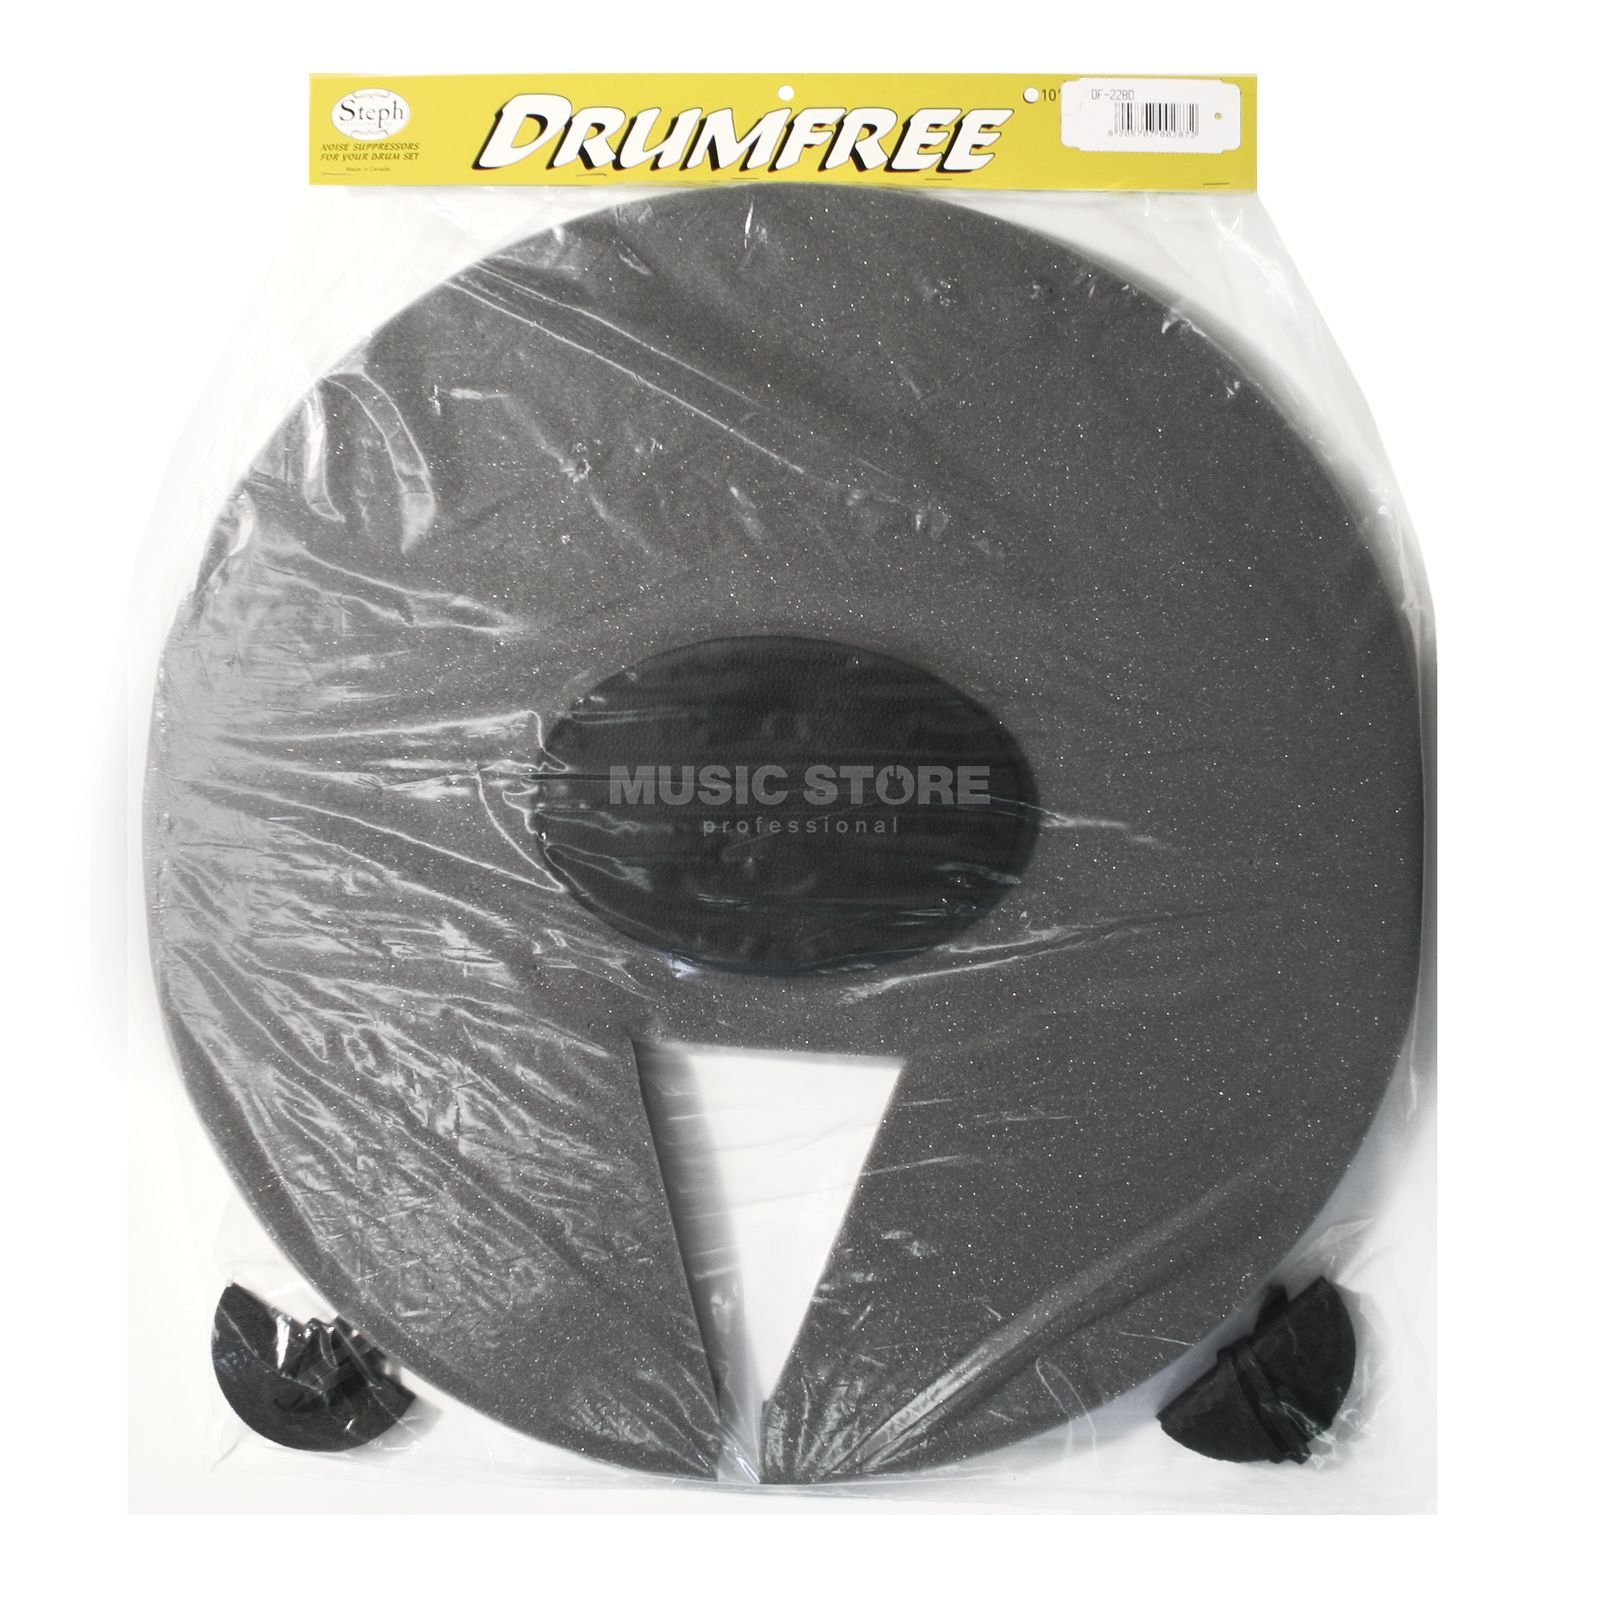 "Drumfree Silencer 22"" BassDrumPad, Overstock Product Image"